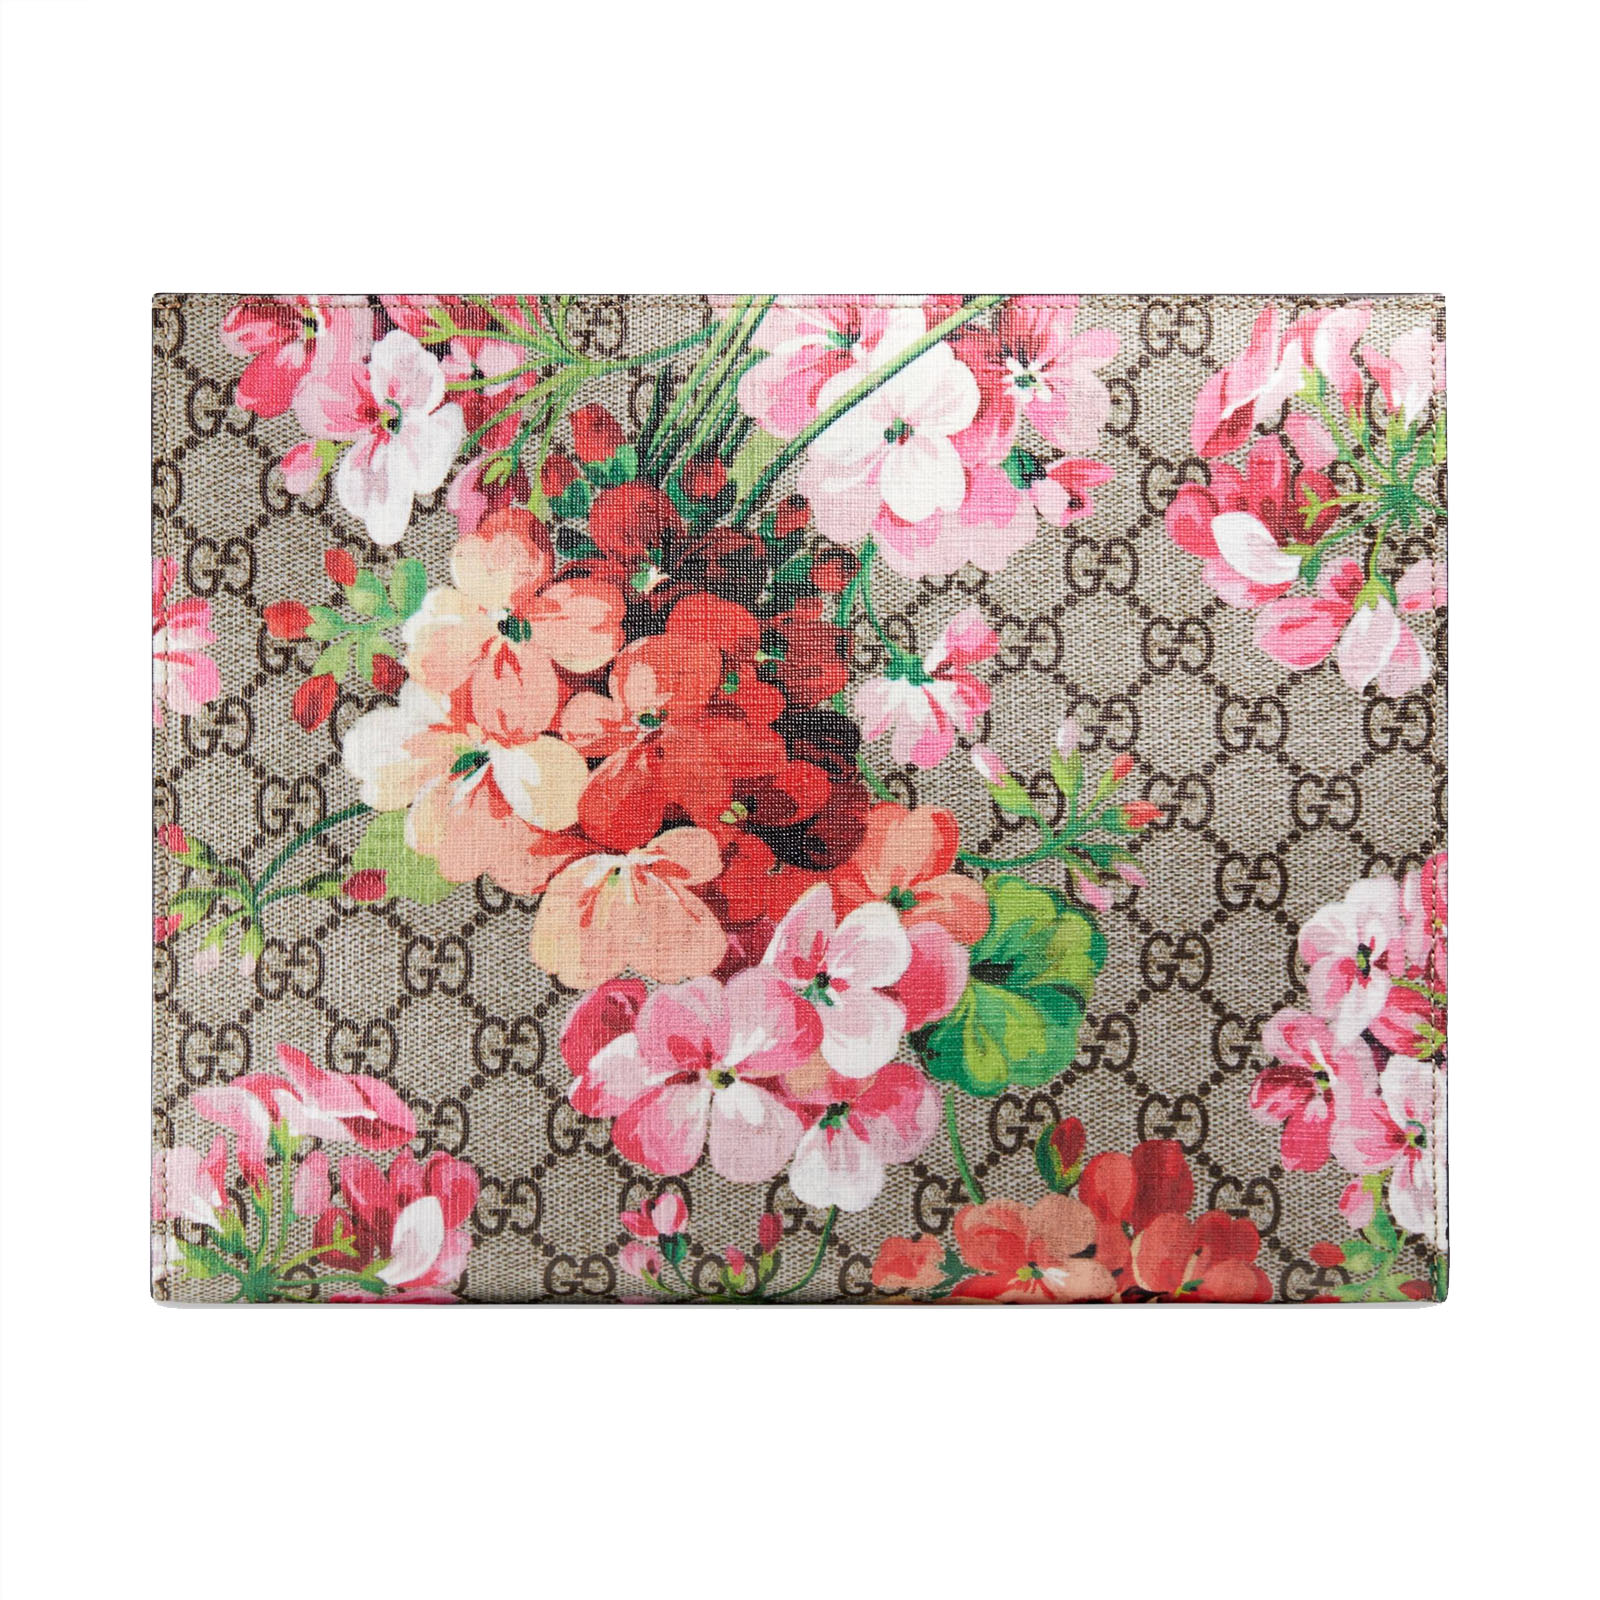 01580f0df6be Gucci Blooms Large Cosmetic Pouch / Clutch Bag - Pink Bloom ...